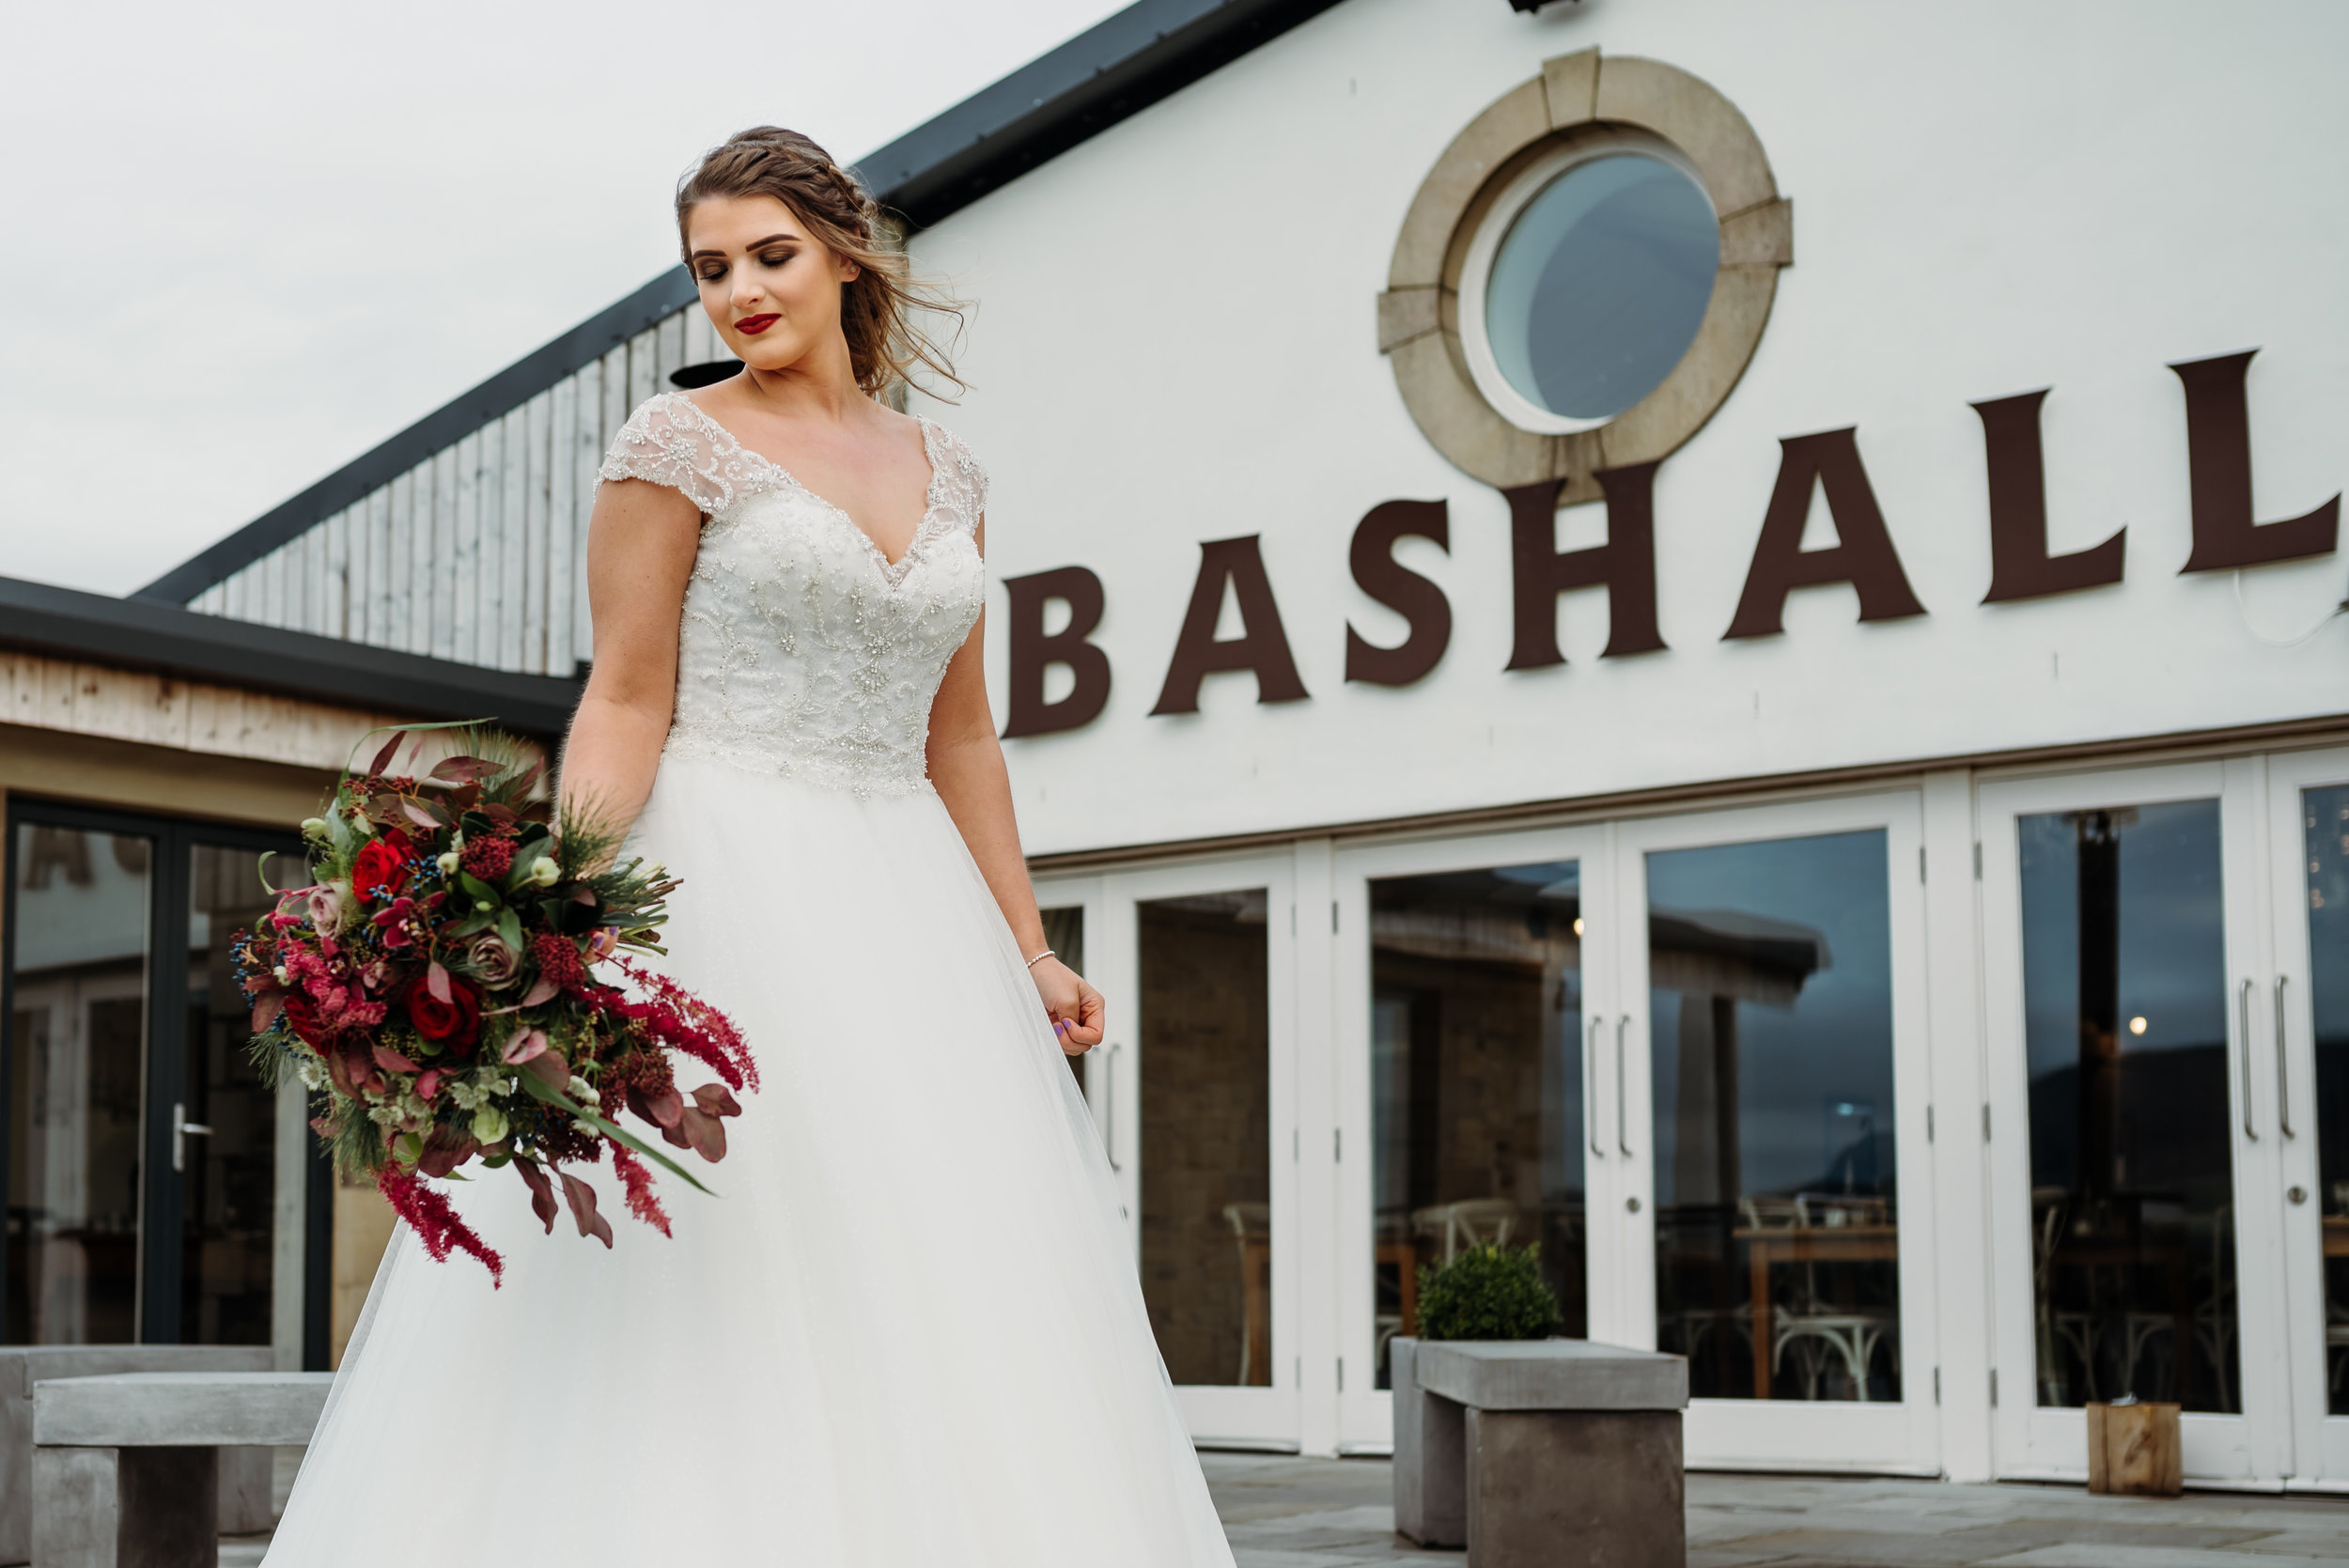 Bashall Barn, Clitheroe wedding